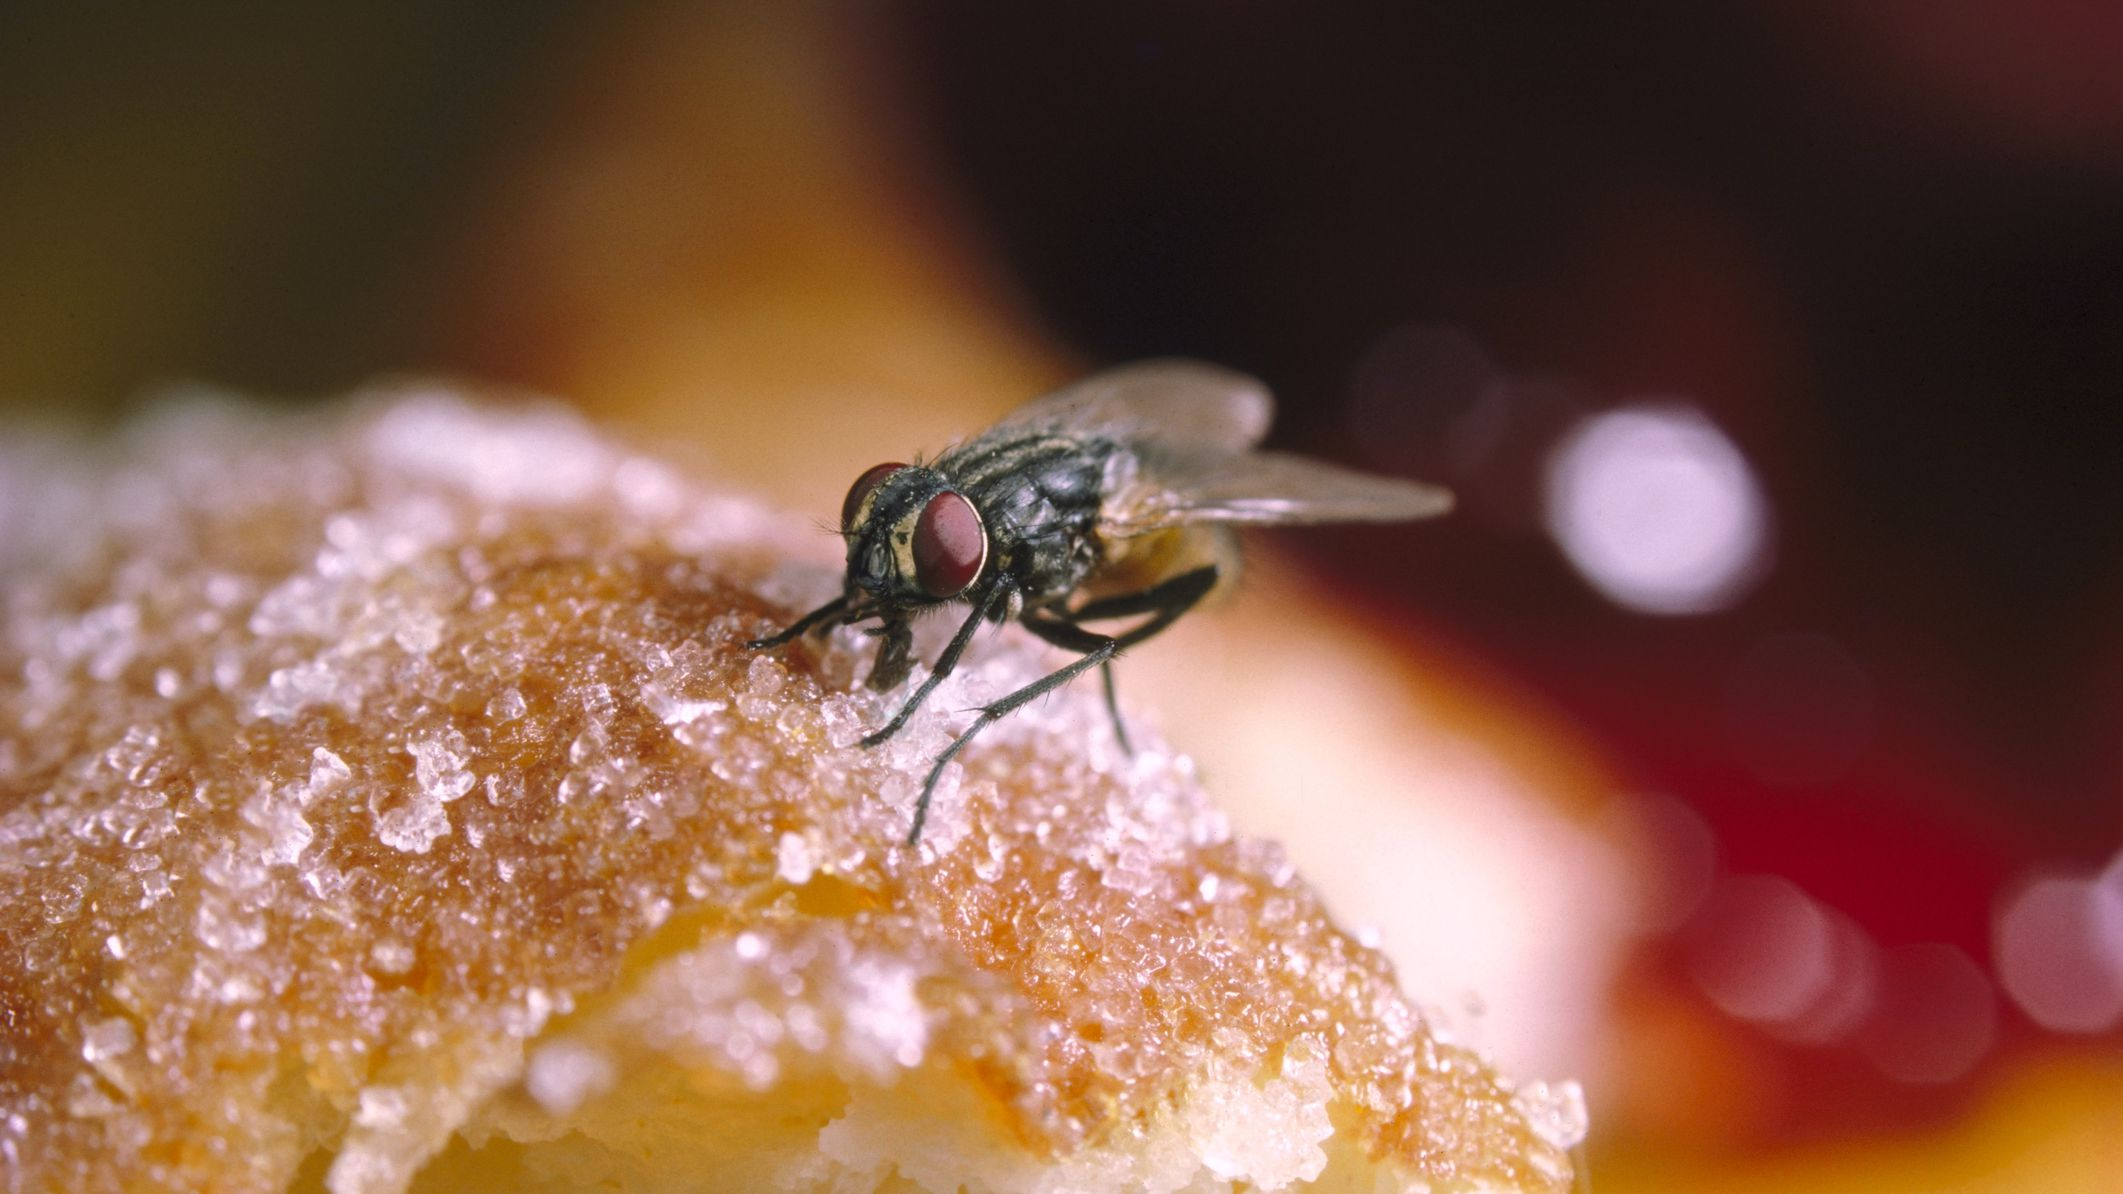 Download How To Get Rid Of Flies In Your Backyard Images ...